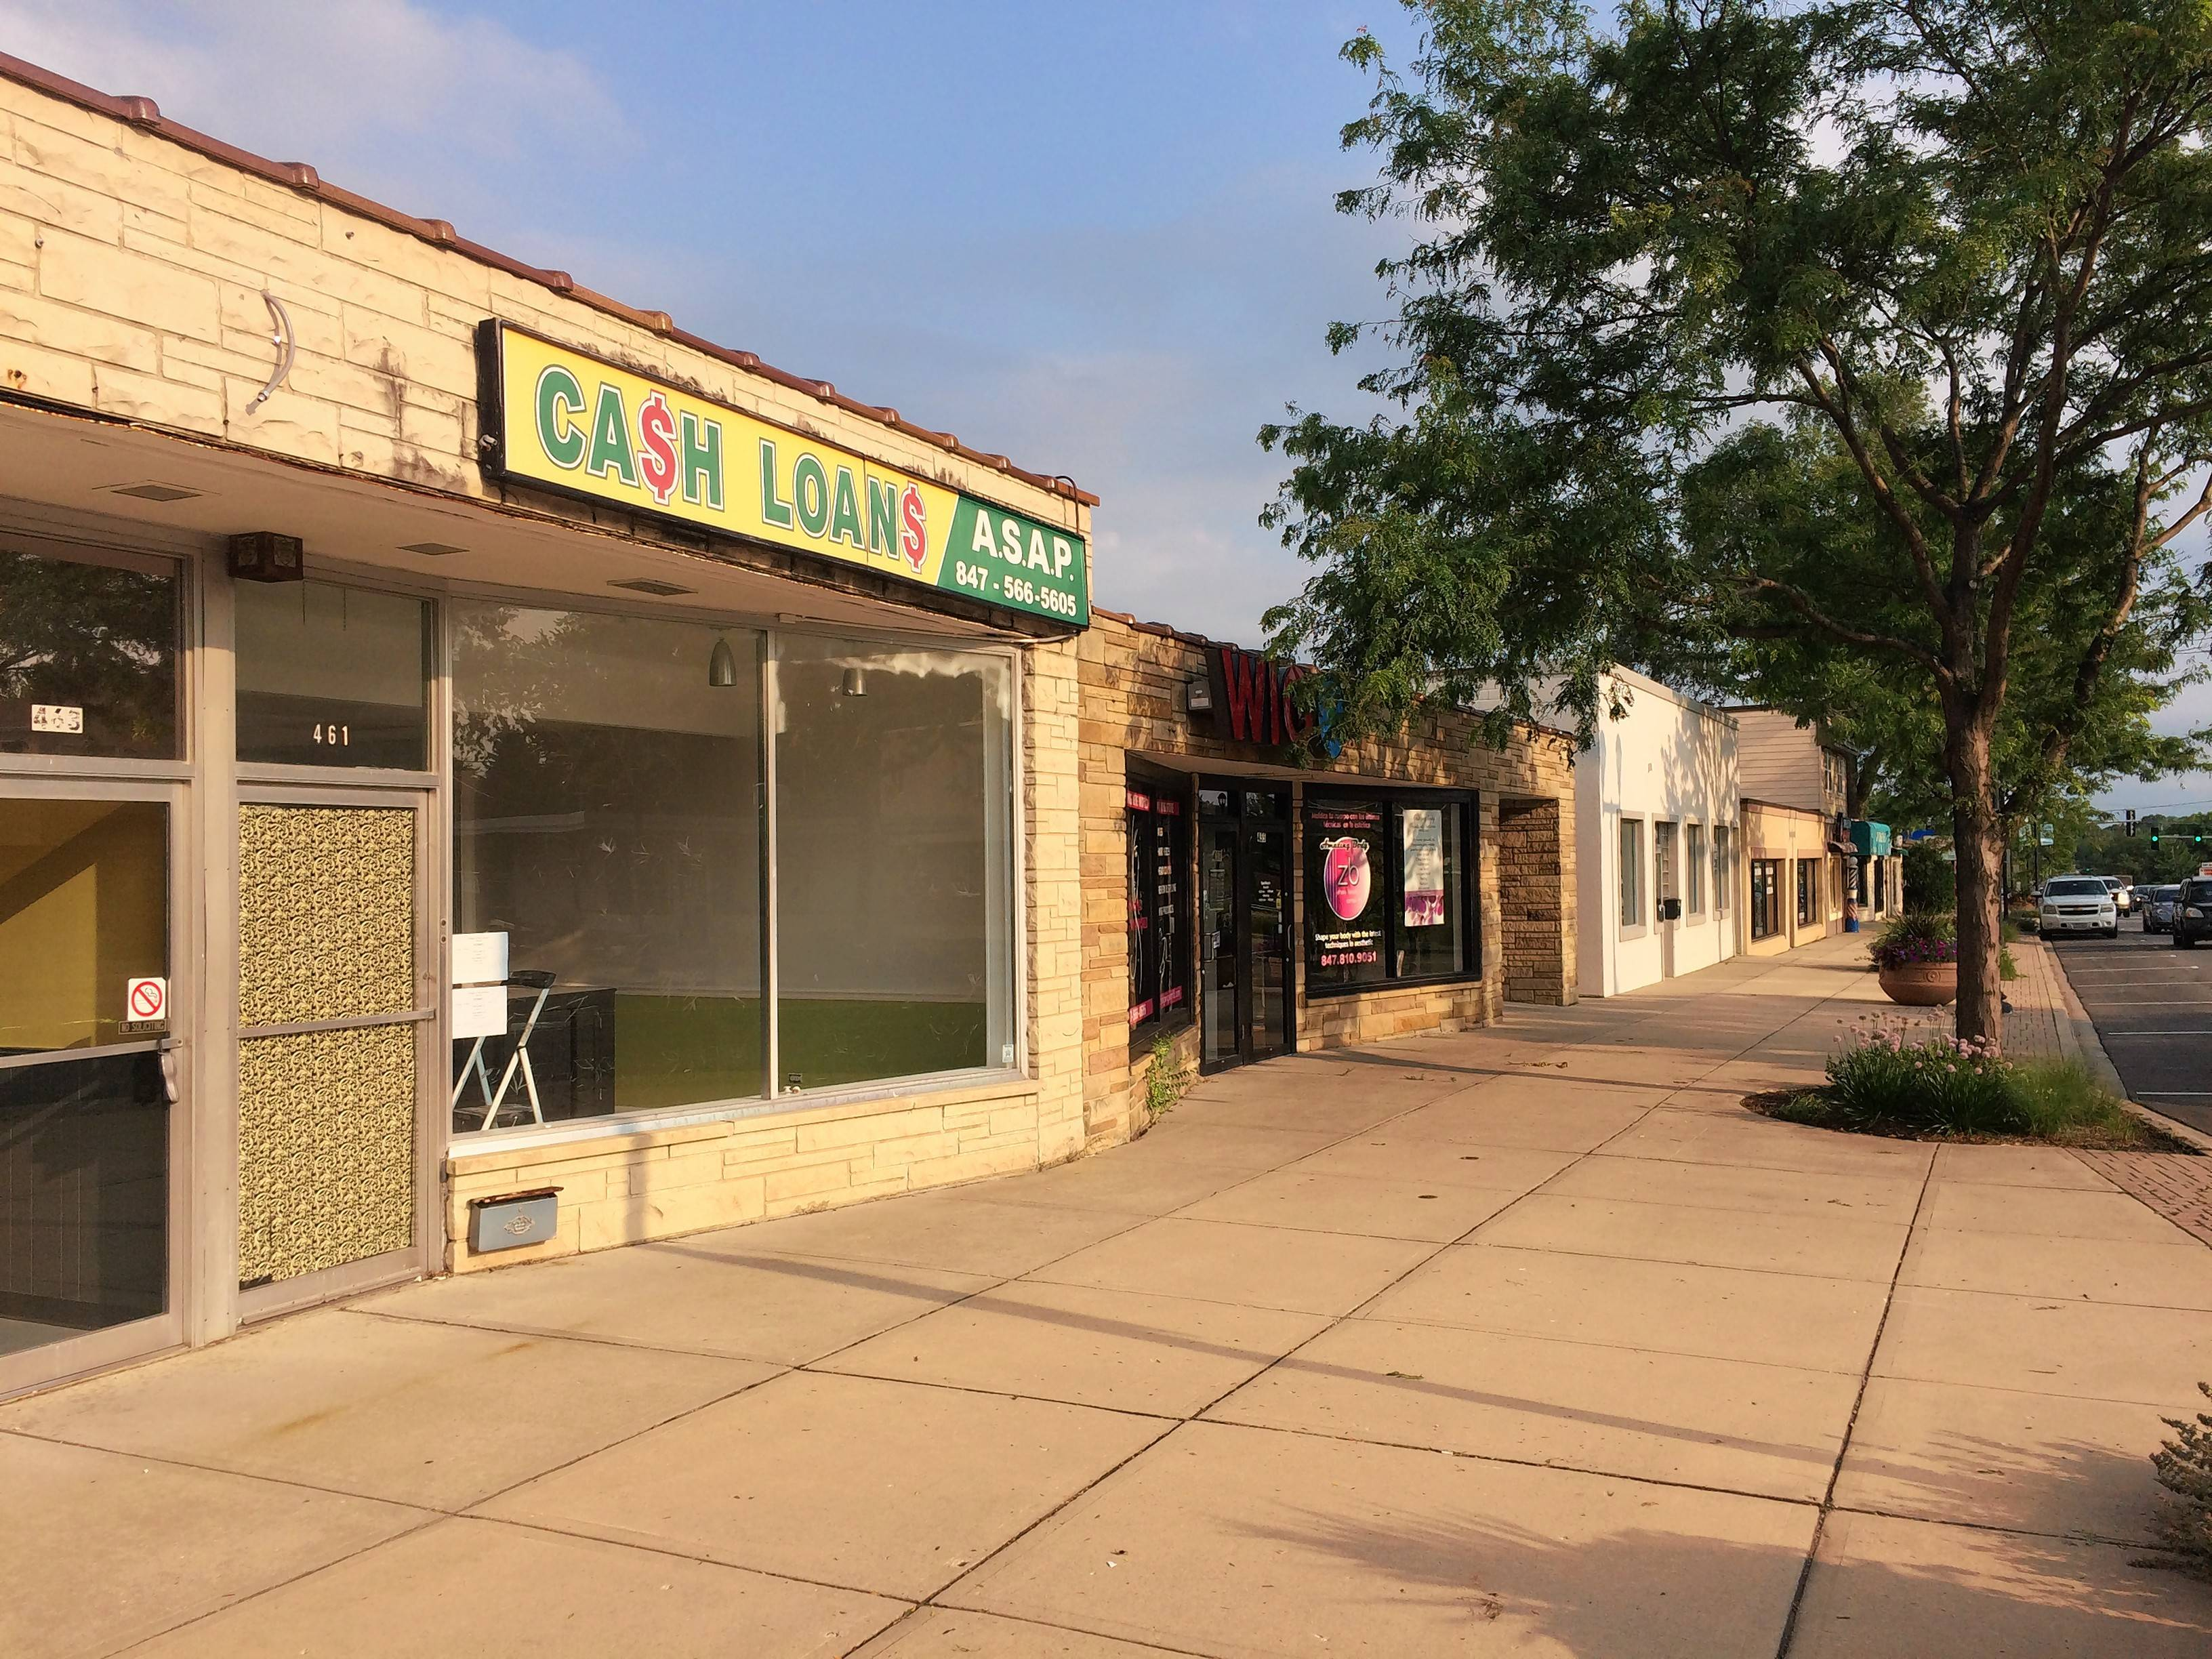 Downtown Mundelein improvement plan gaining steam, consultant says